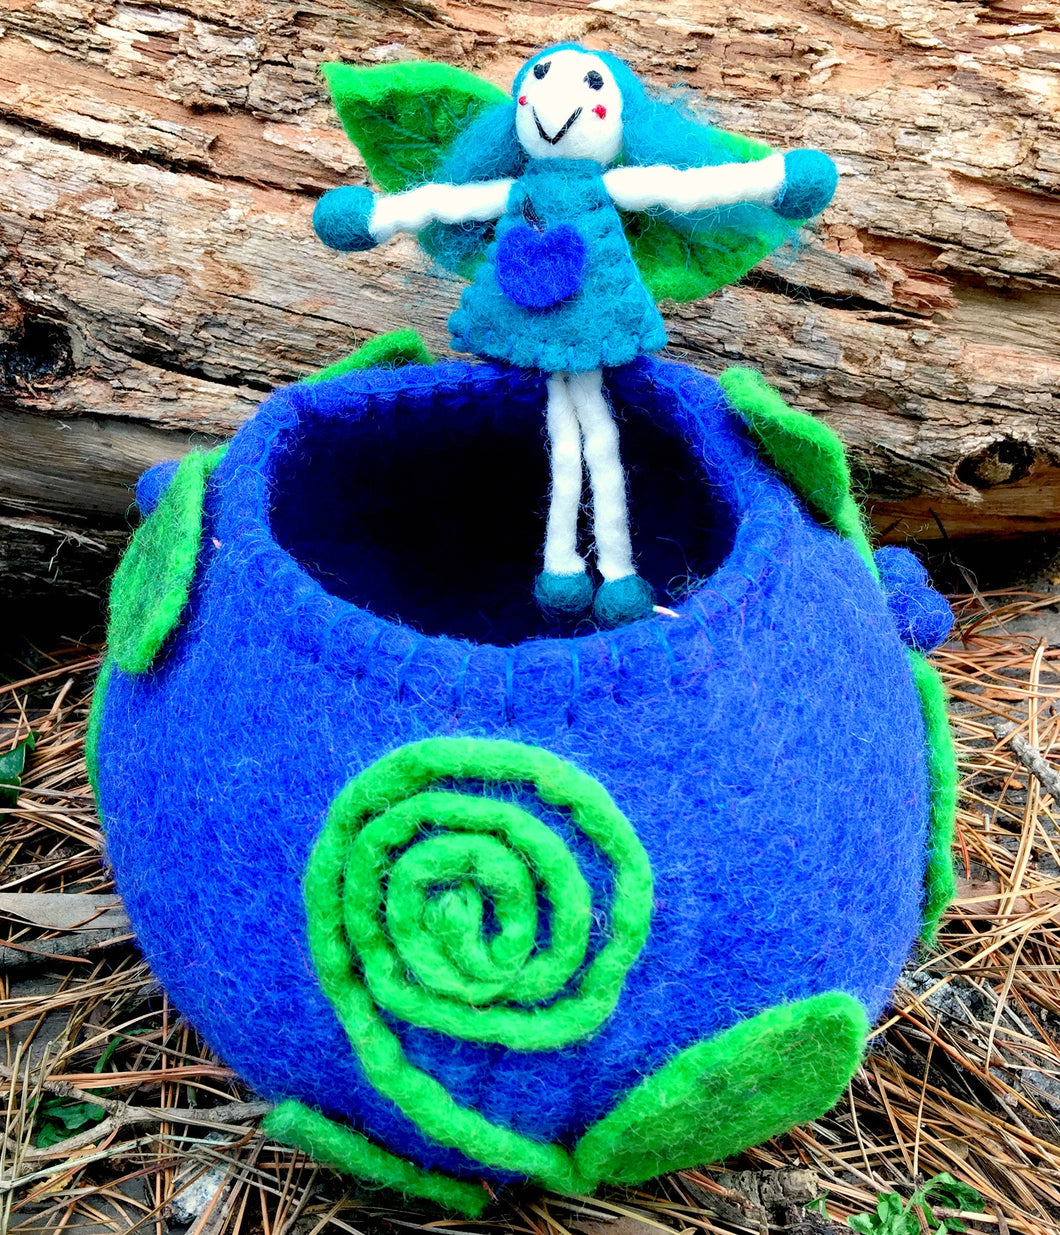 Miss Blueberry faery wishing bowl